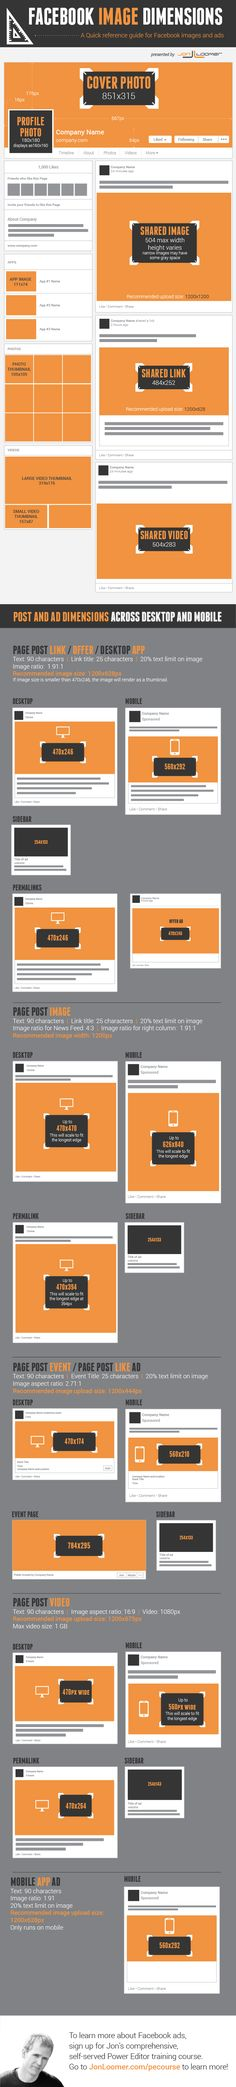 All Facebook Image Dimensions: Timeline, Posts, Ads [Infographic]